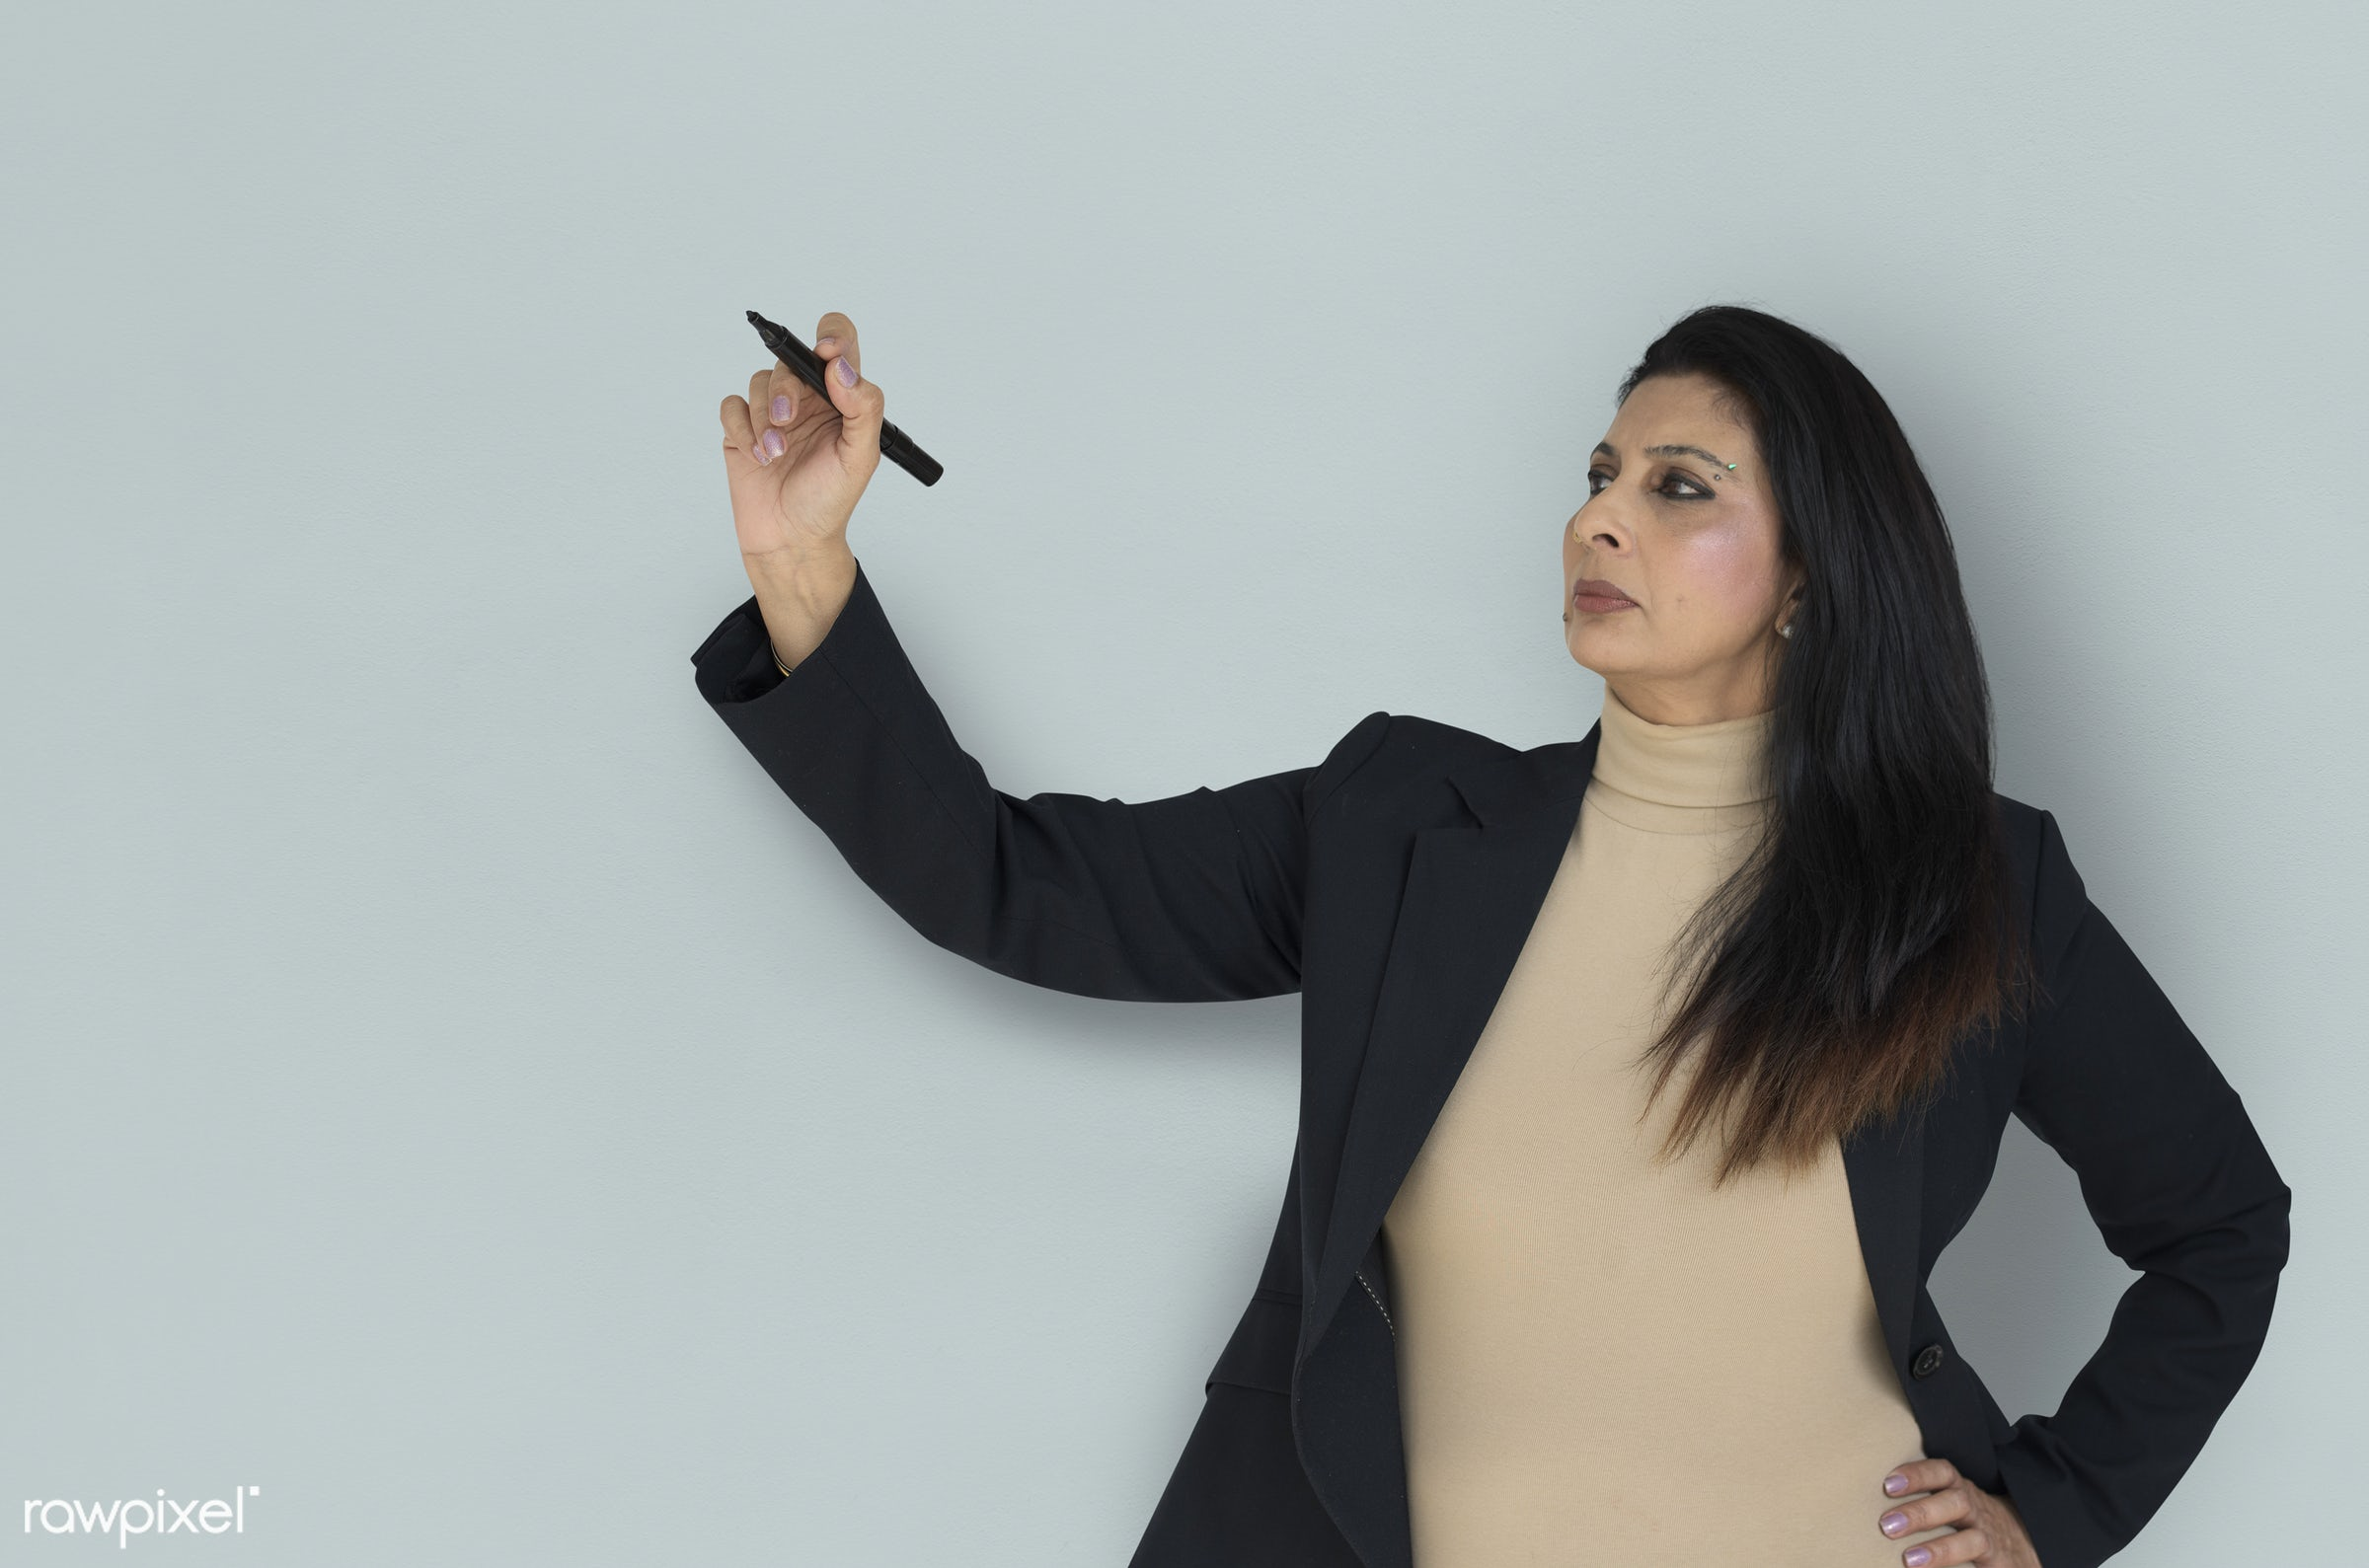 expression, studio, lecture, person, business wear, holding pen, writing, concentrating, people, asian, girl, woman, focused...